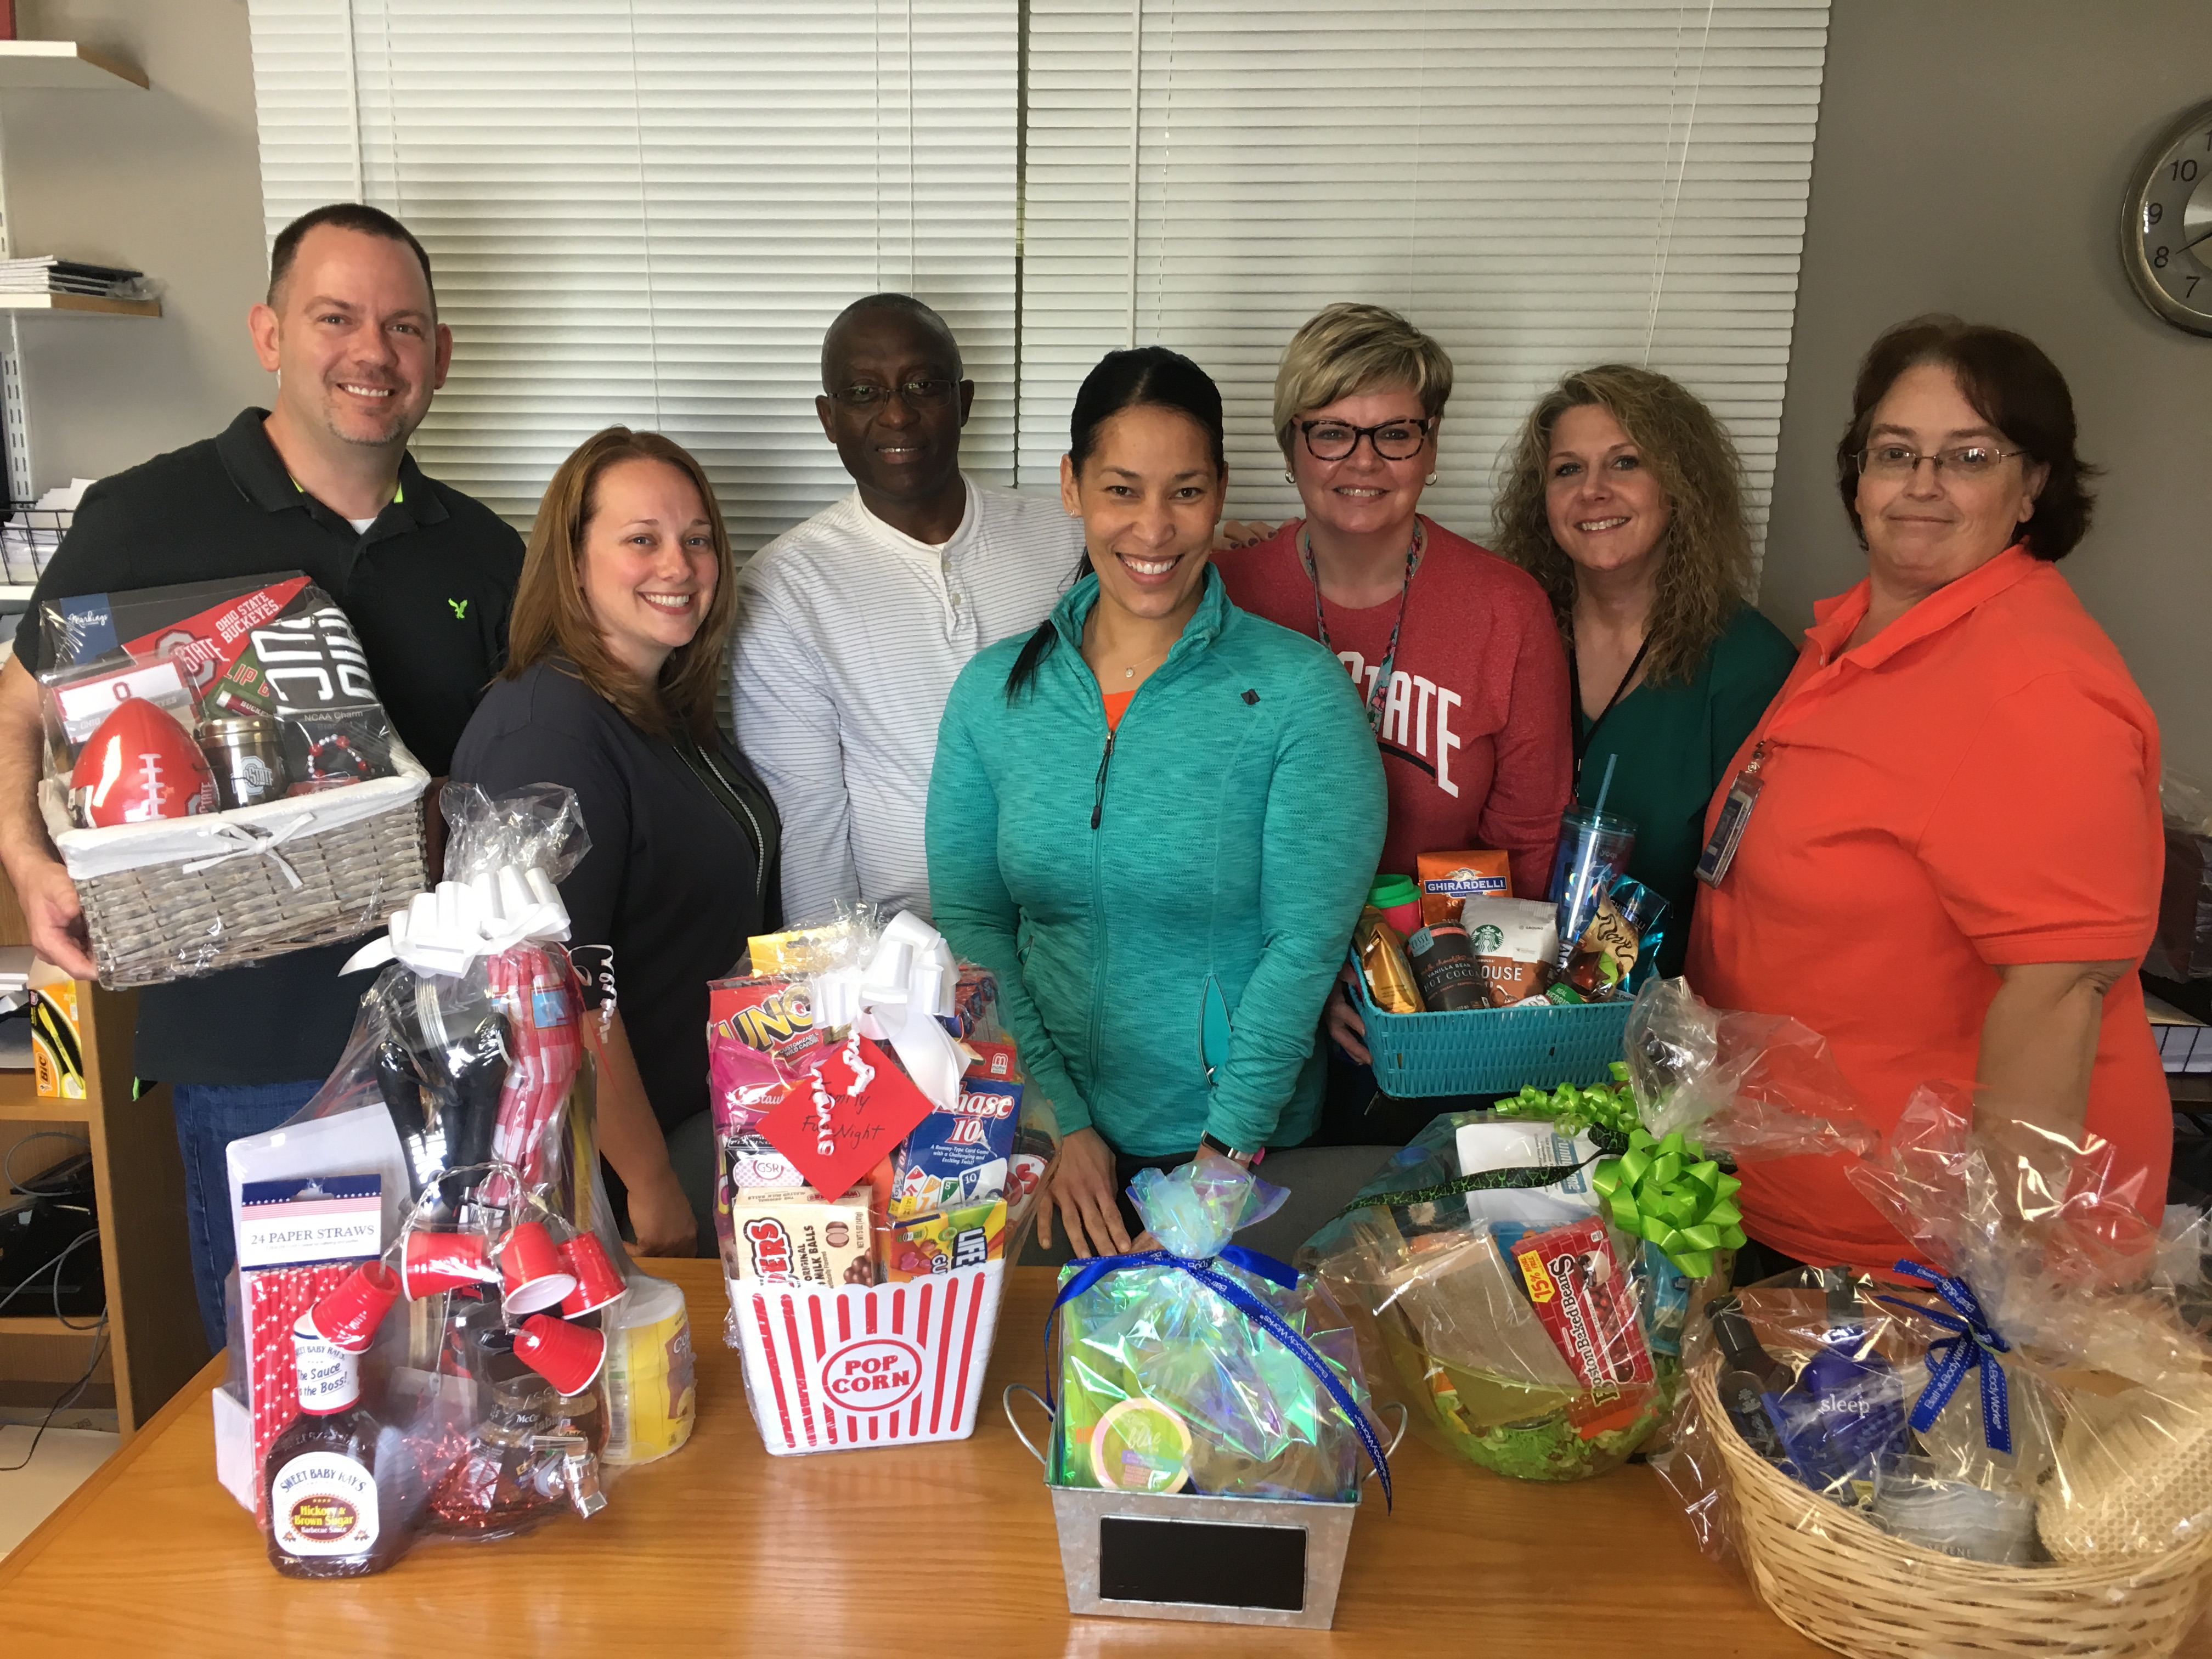 FMC's Medical Leadership Team Recognizes Nurses Week